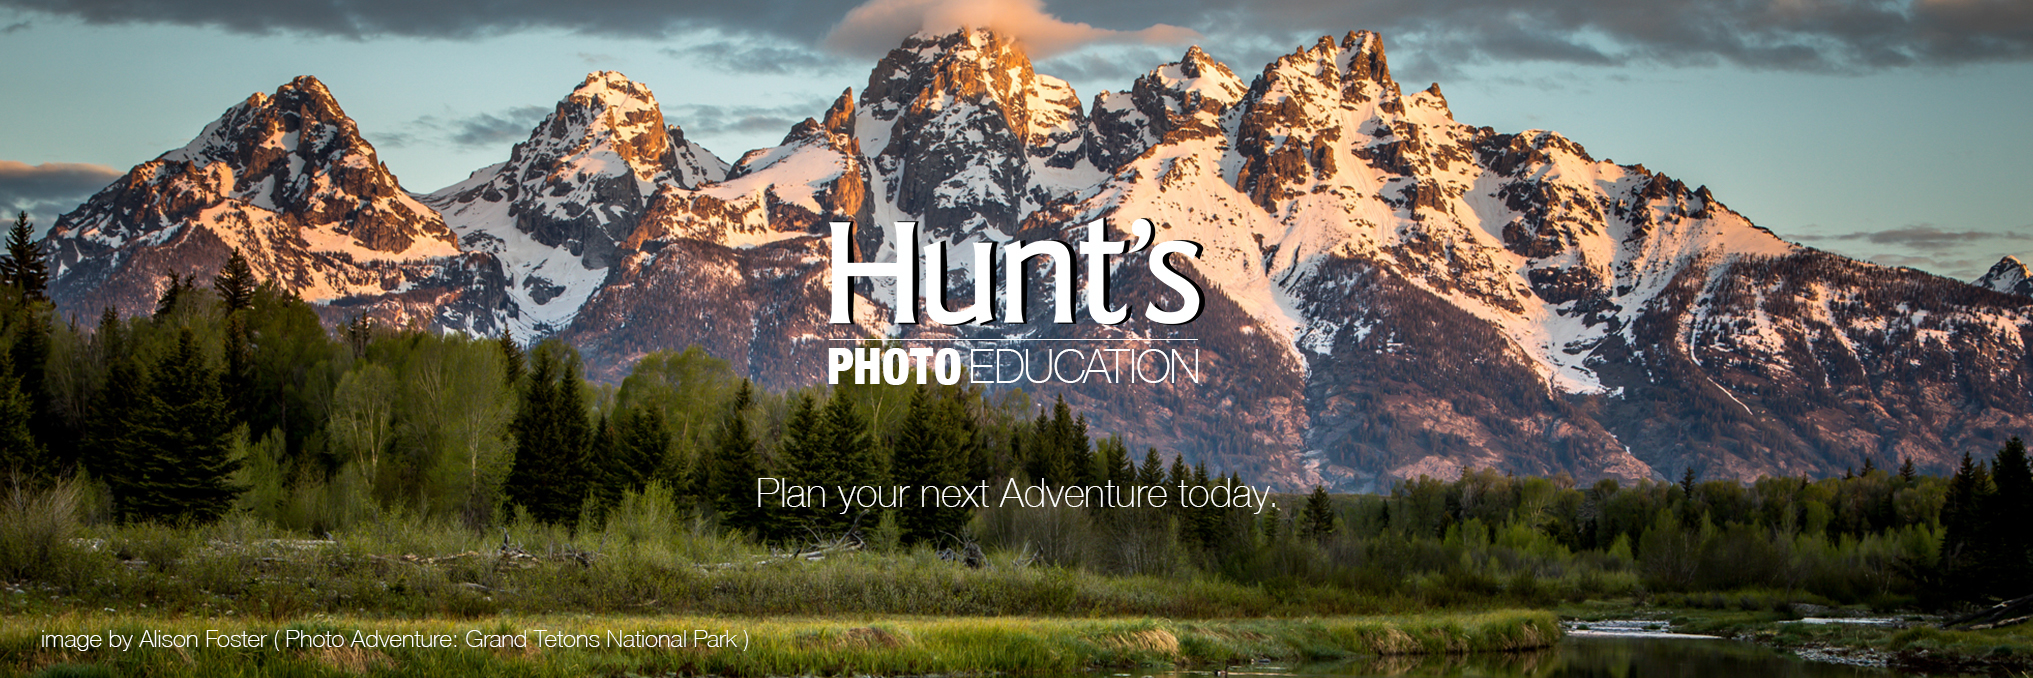 Hunt's Photo Adventures